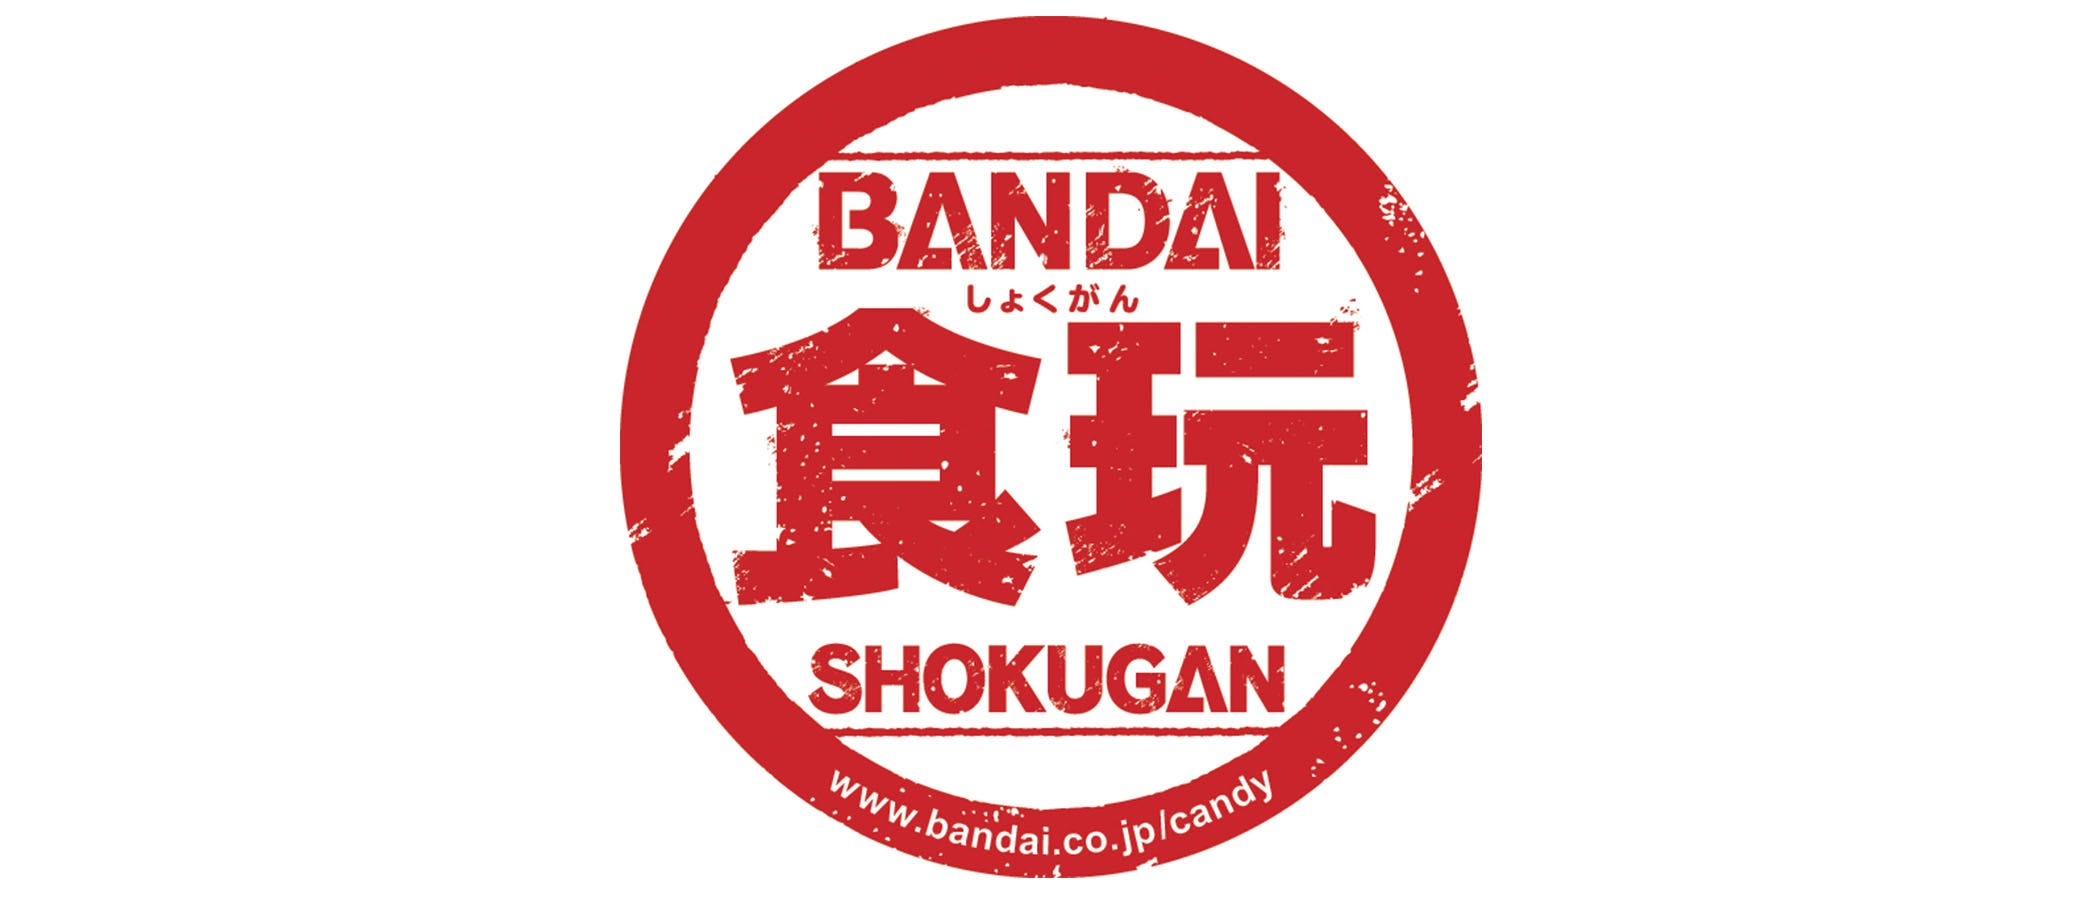 For Your Information: Shokugan